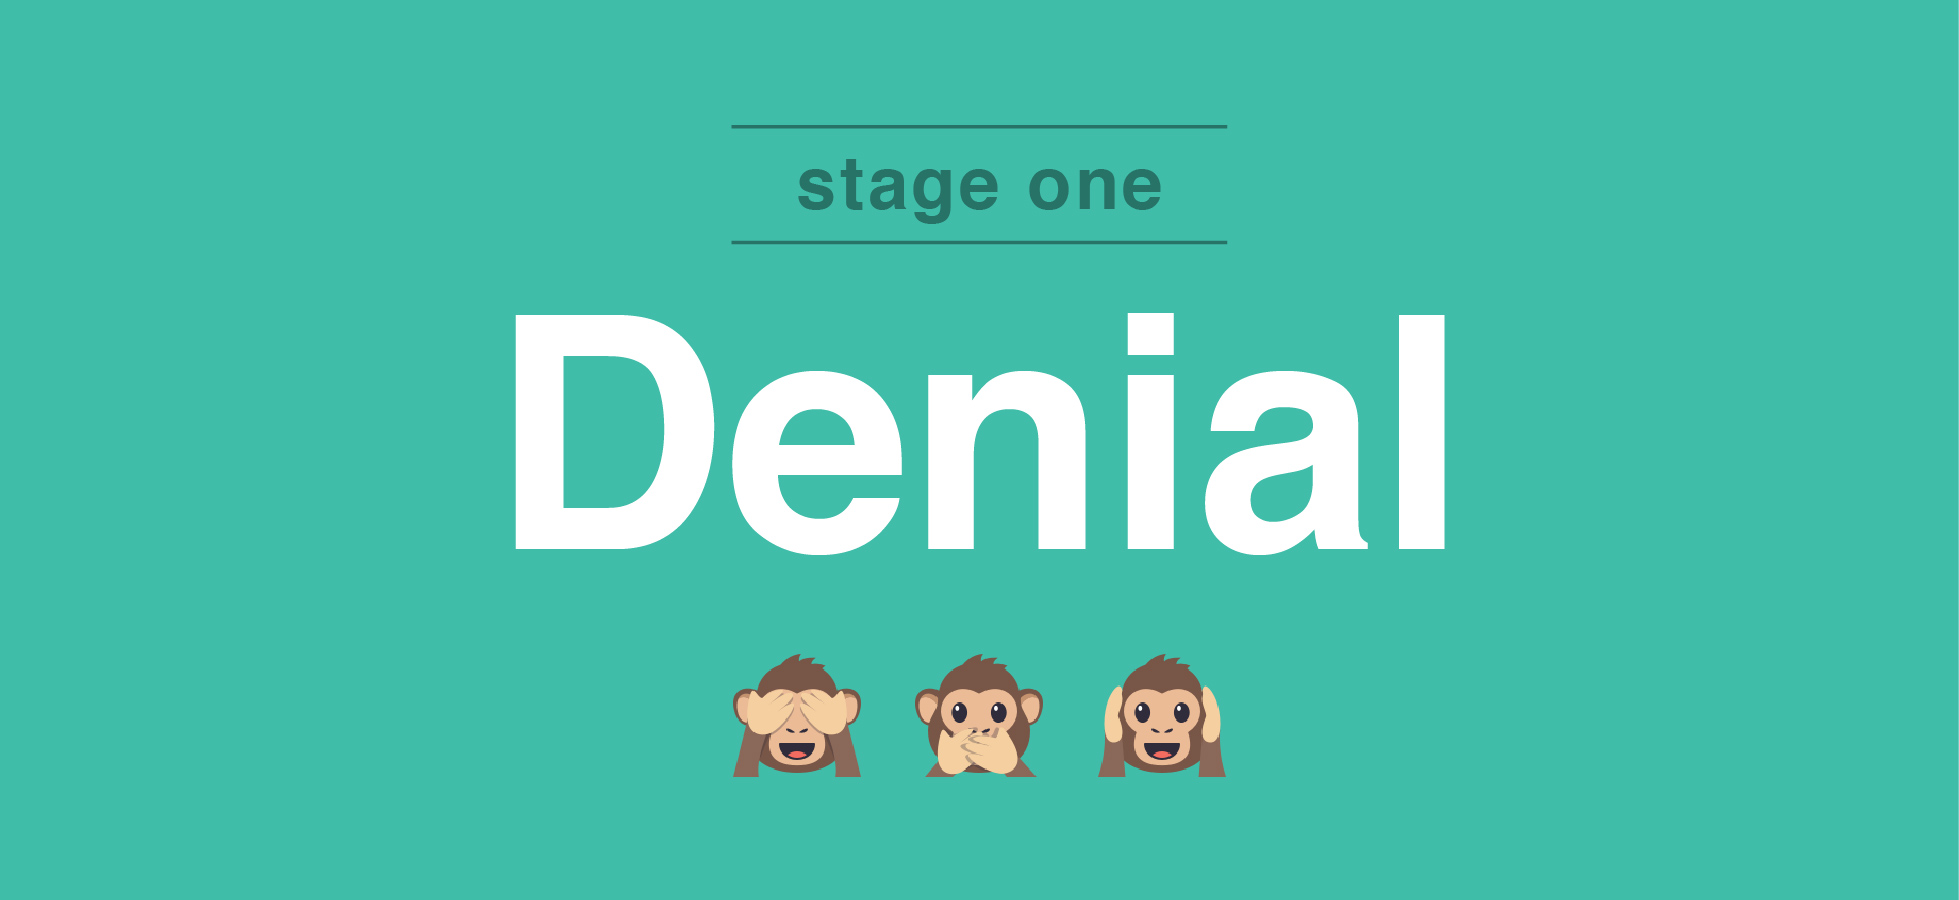 rebranding-stages-denial